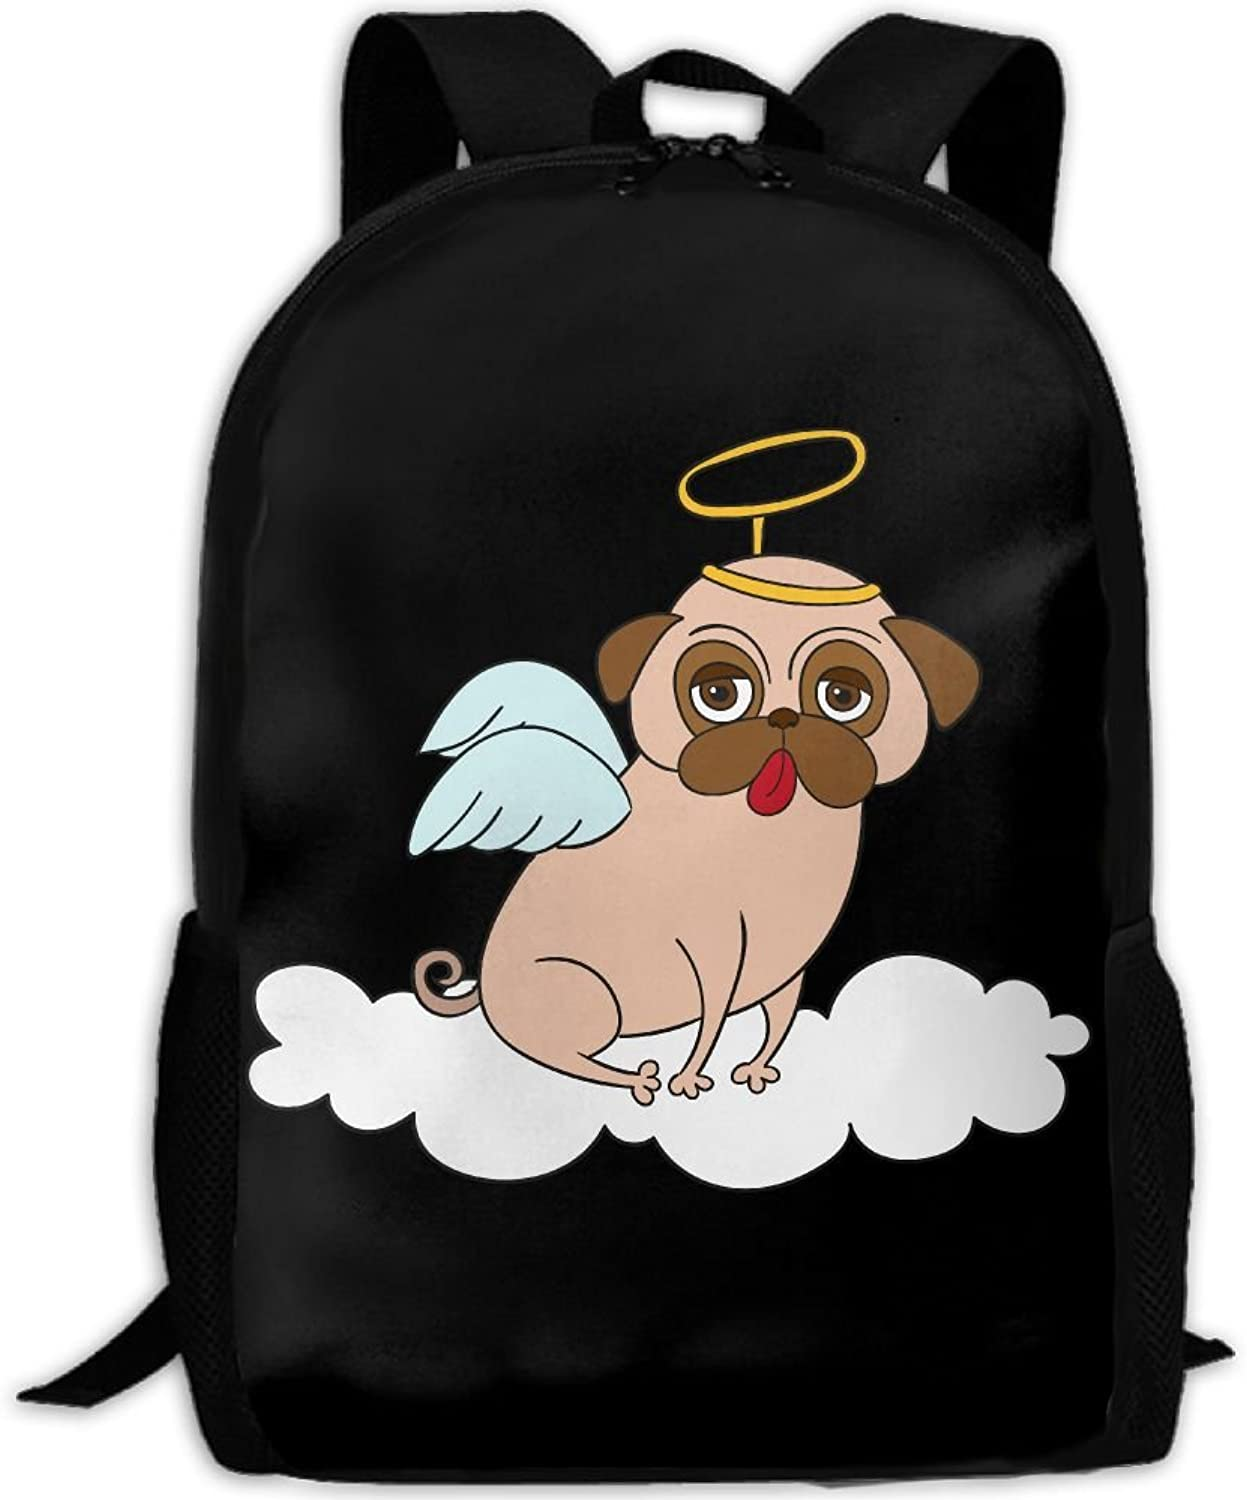 b69e13a6fe25 Adult Backpack Pug College Daypack Oxford Bag Unisex Travel Sports ...